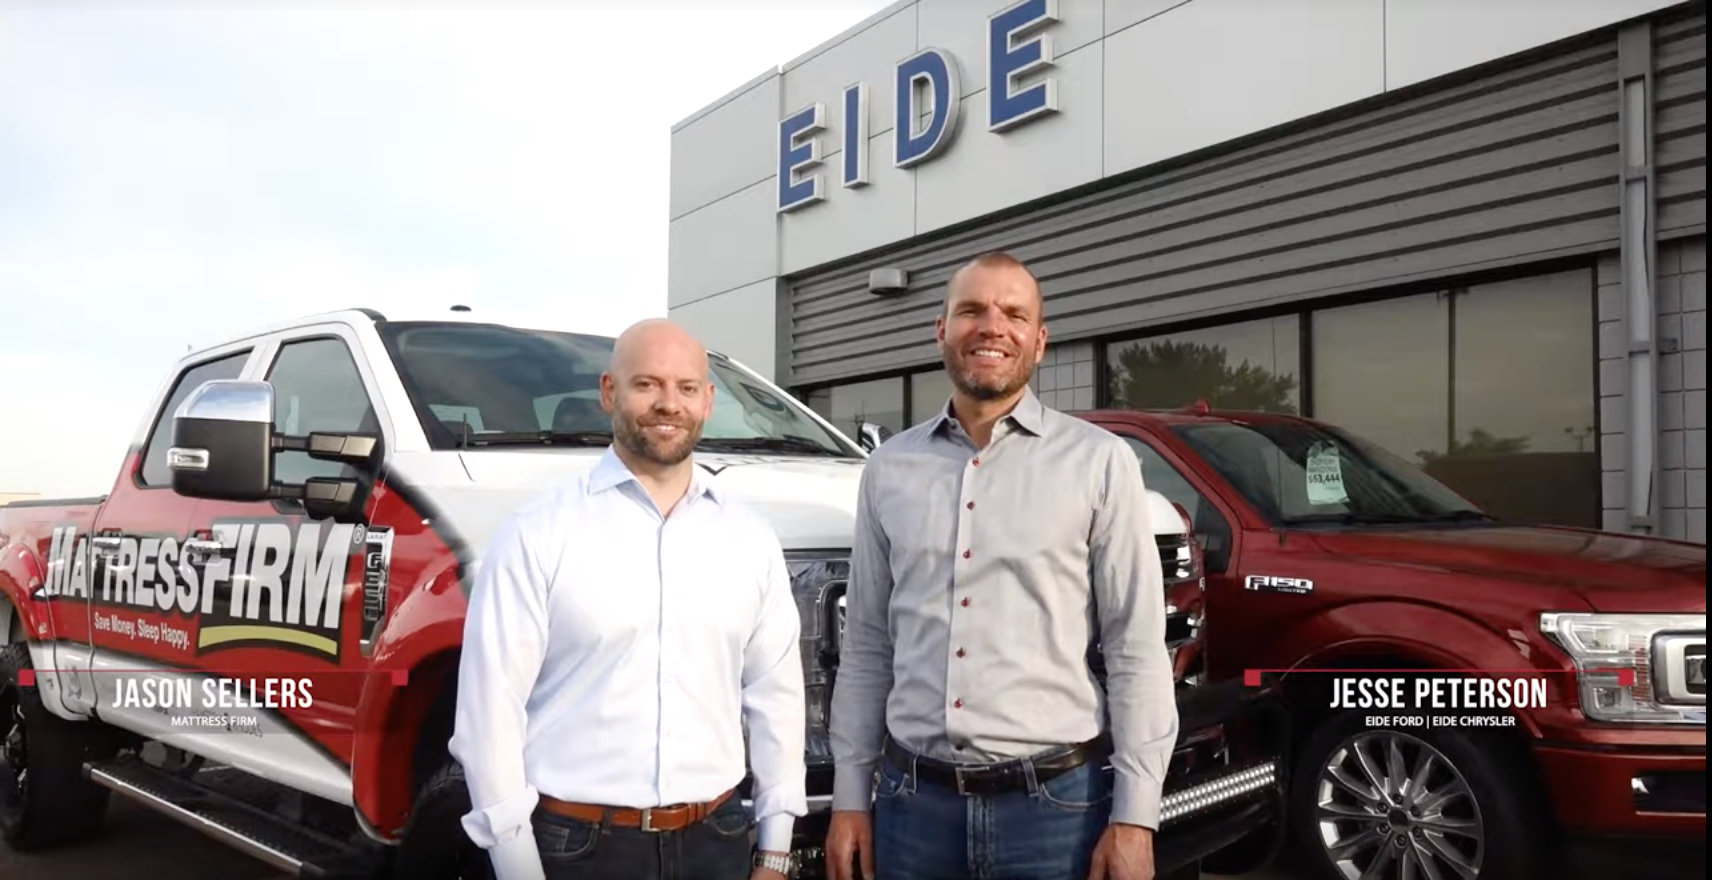 Jesse Peterson of Eide Chrysler and Eide Ford with Jason Sellers of Mattress Firm